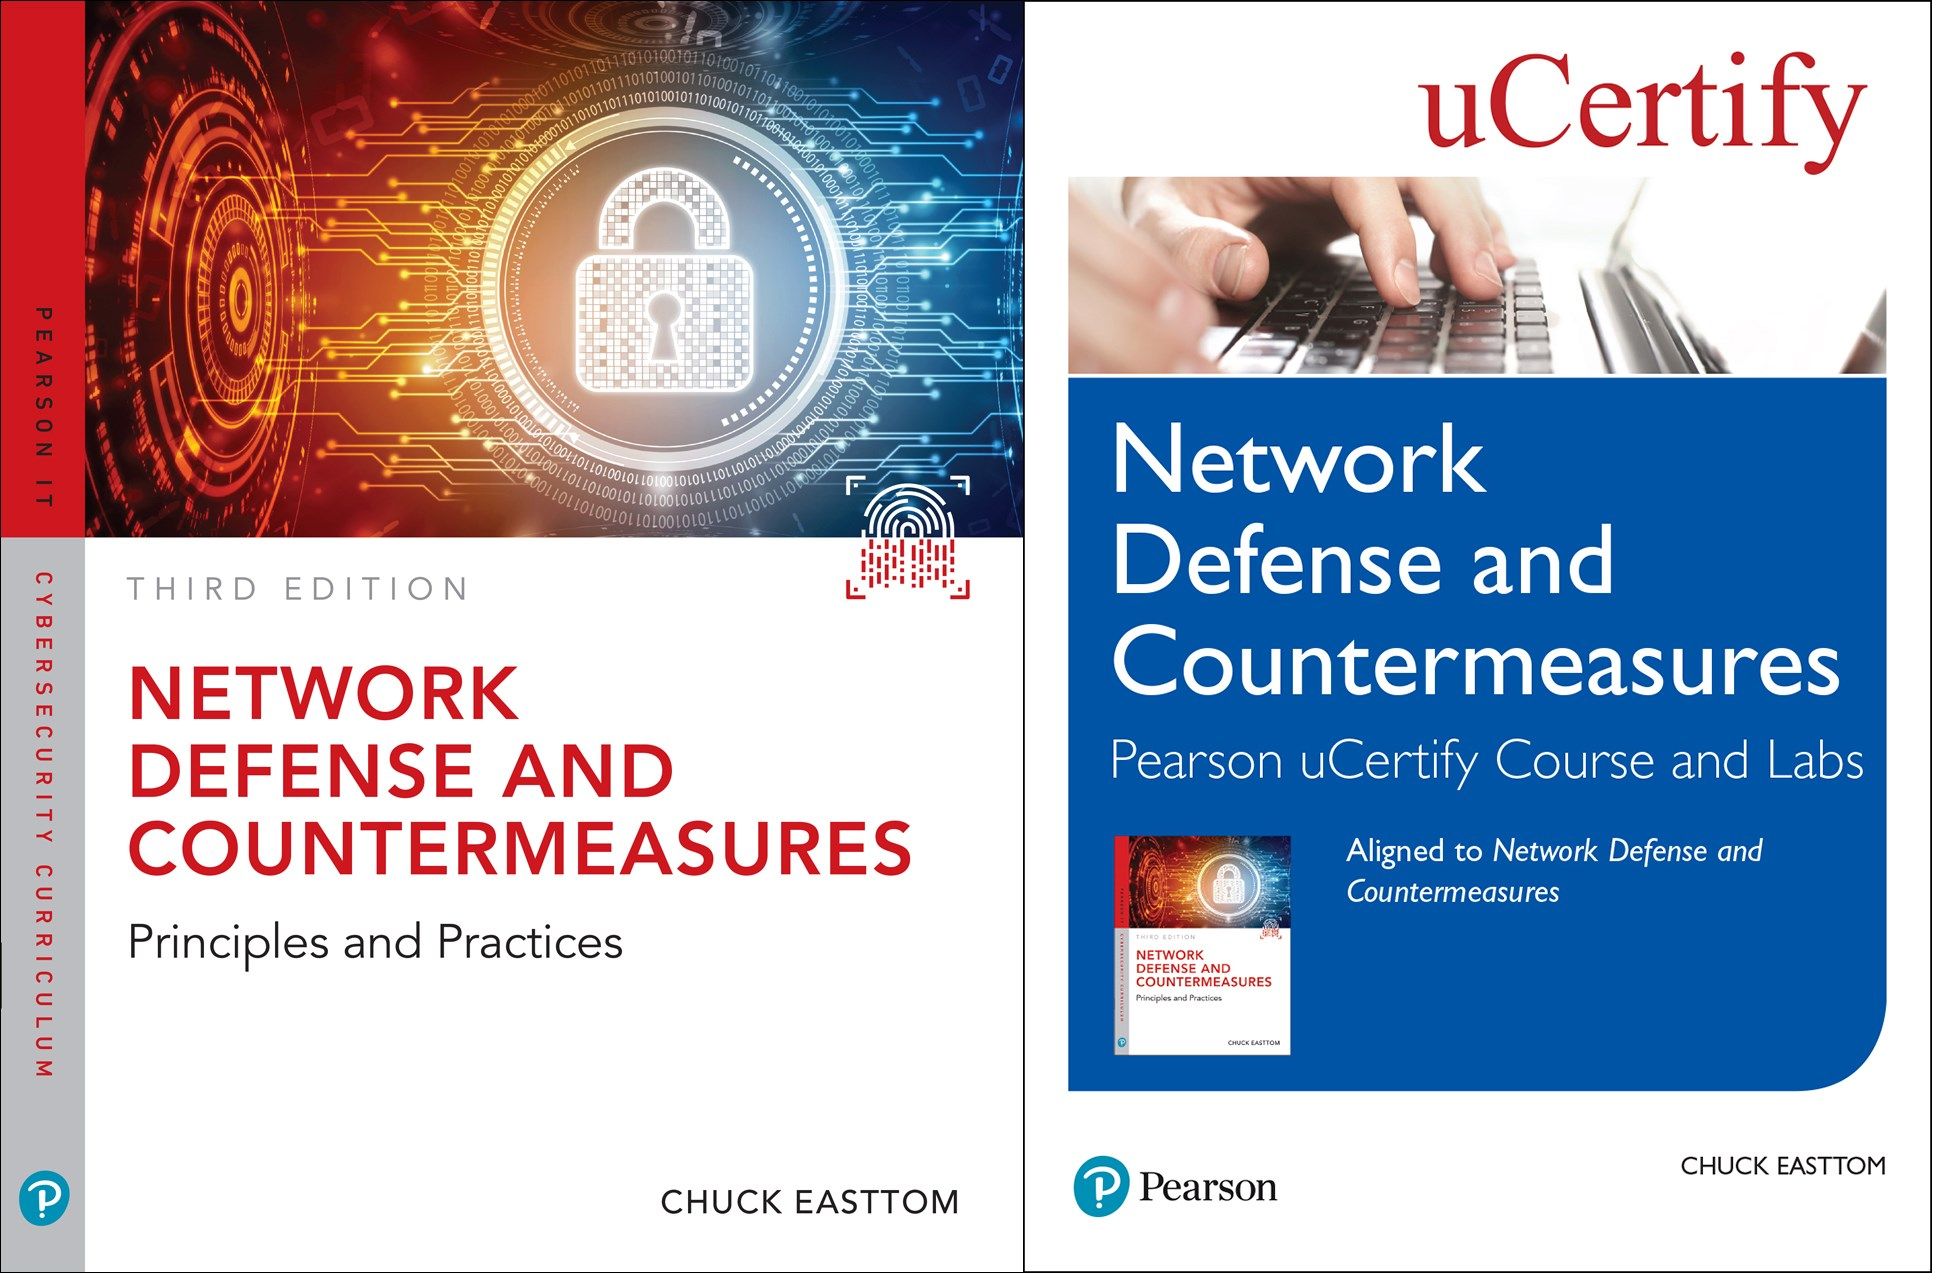 Network Defense and Countermeasures Pearson uCertify Course and Labs and Textbook Bundle